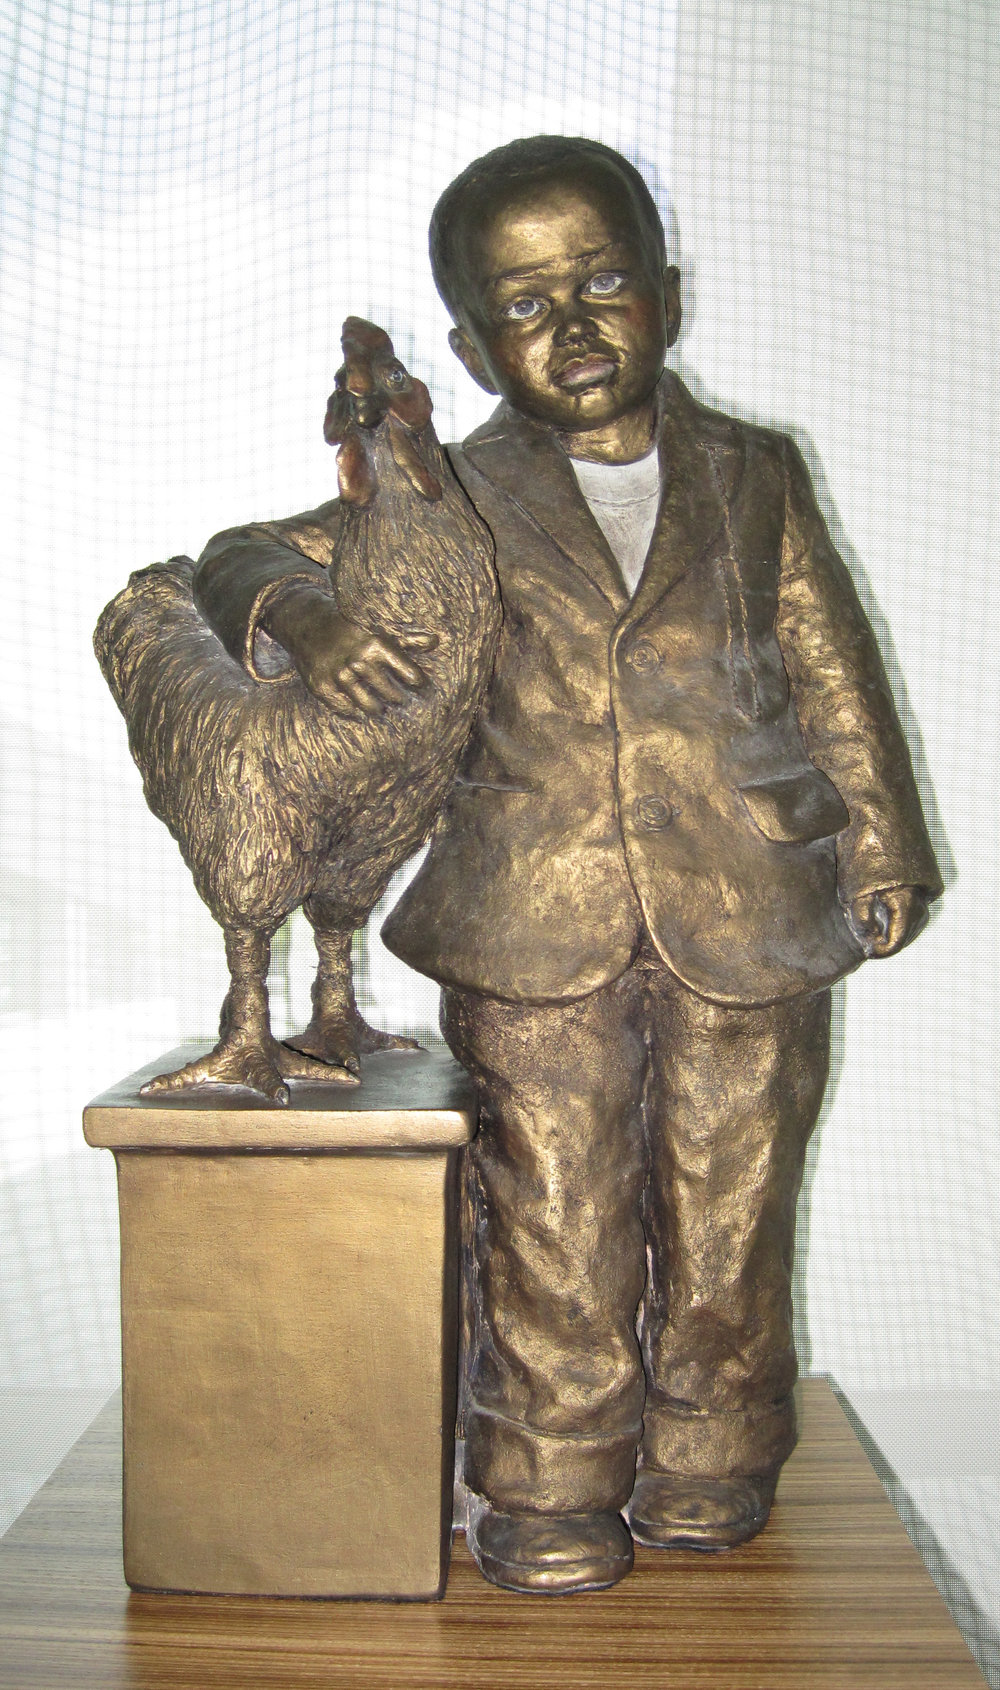 Boy with a Rooster  1994, Clay  25 1/2 x 18 x 9 inches